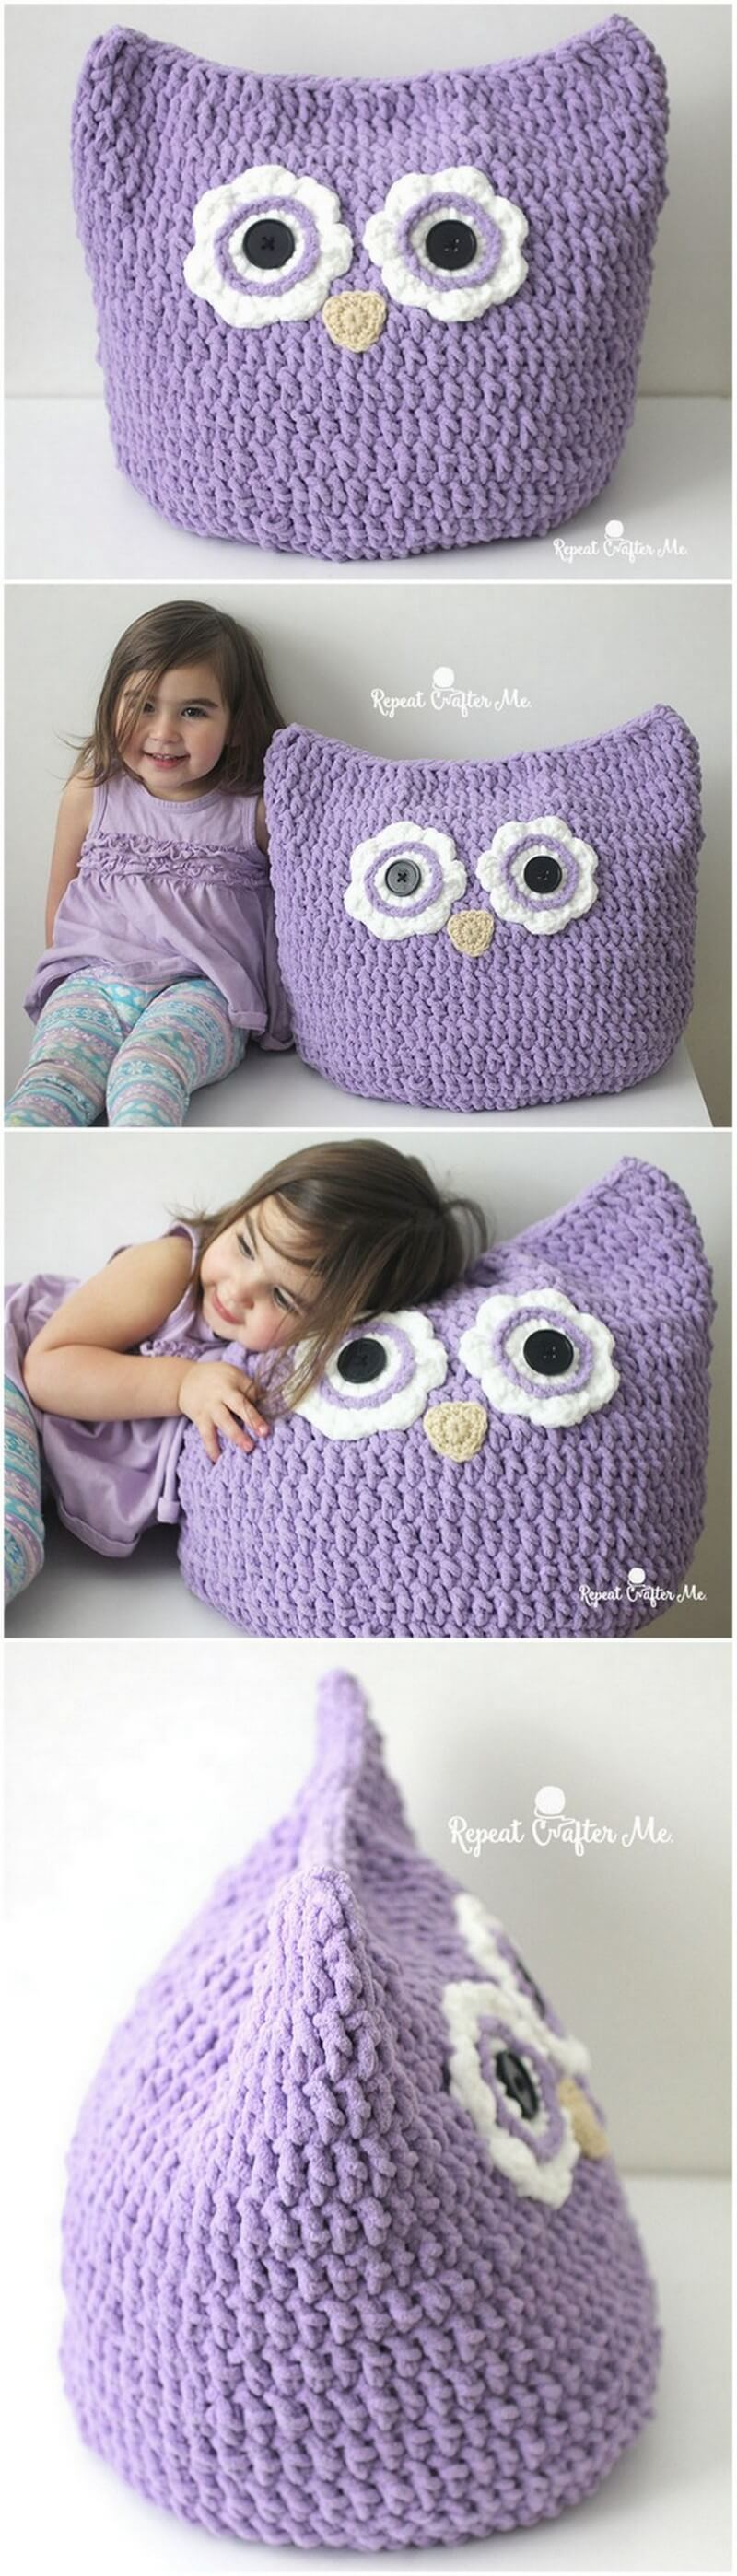 Crochet Pillow Pattern (45)